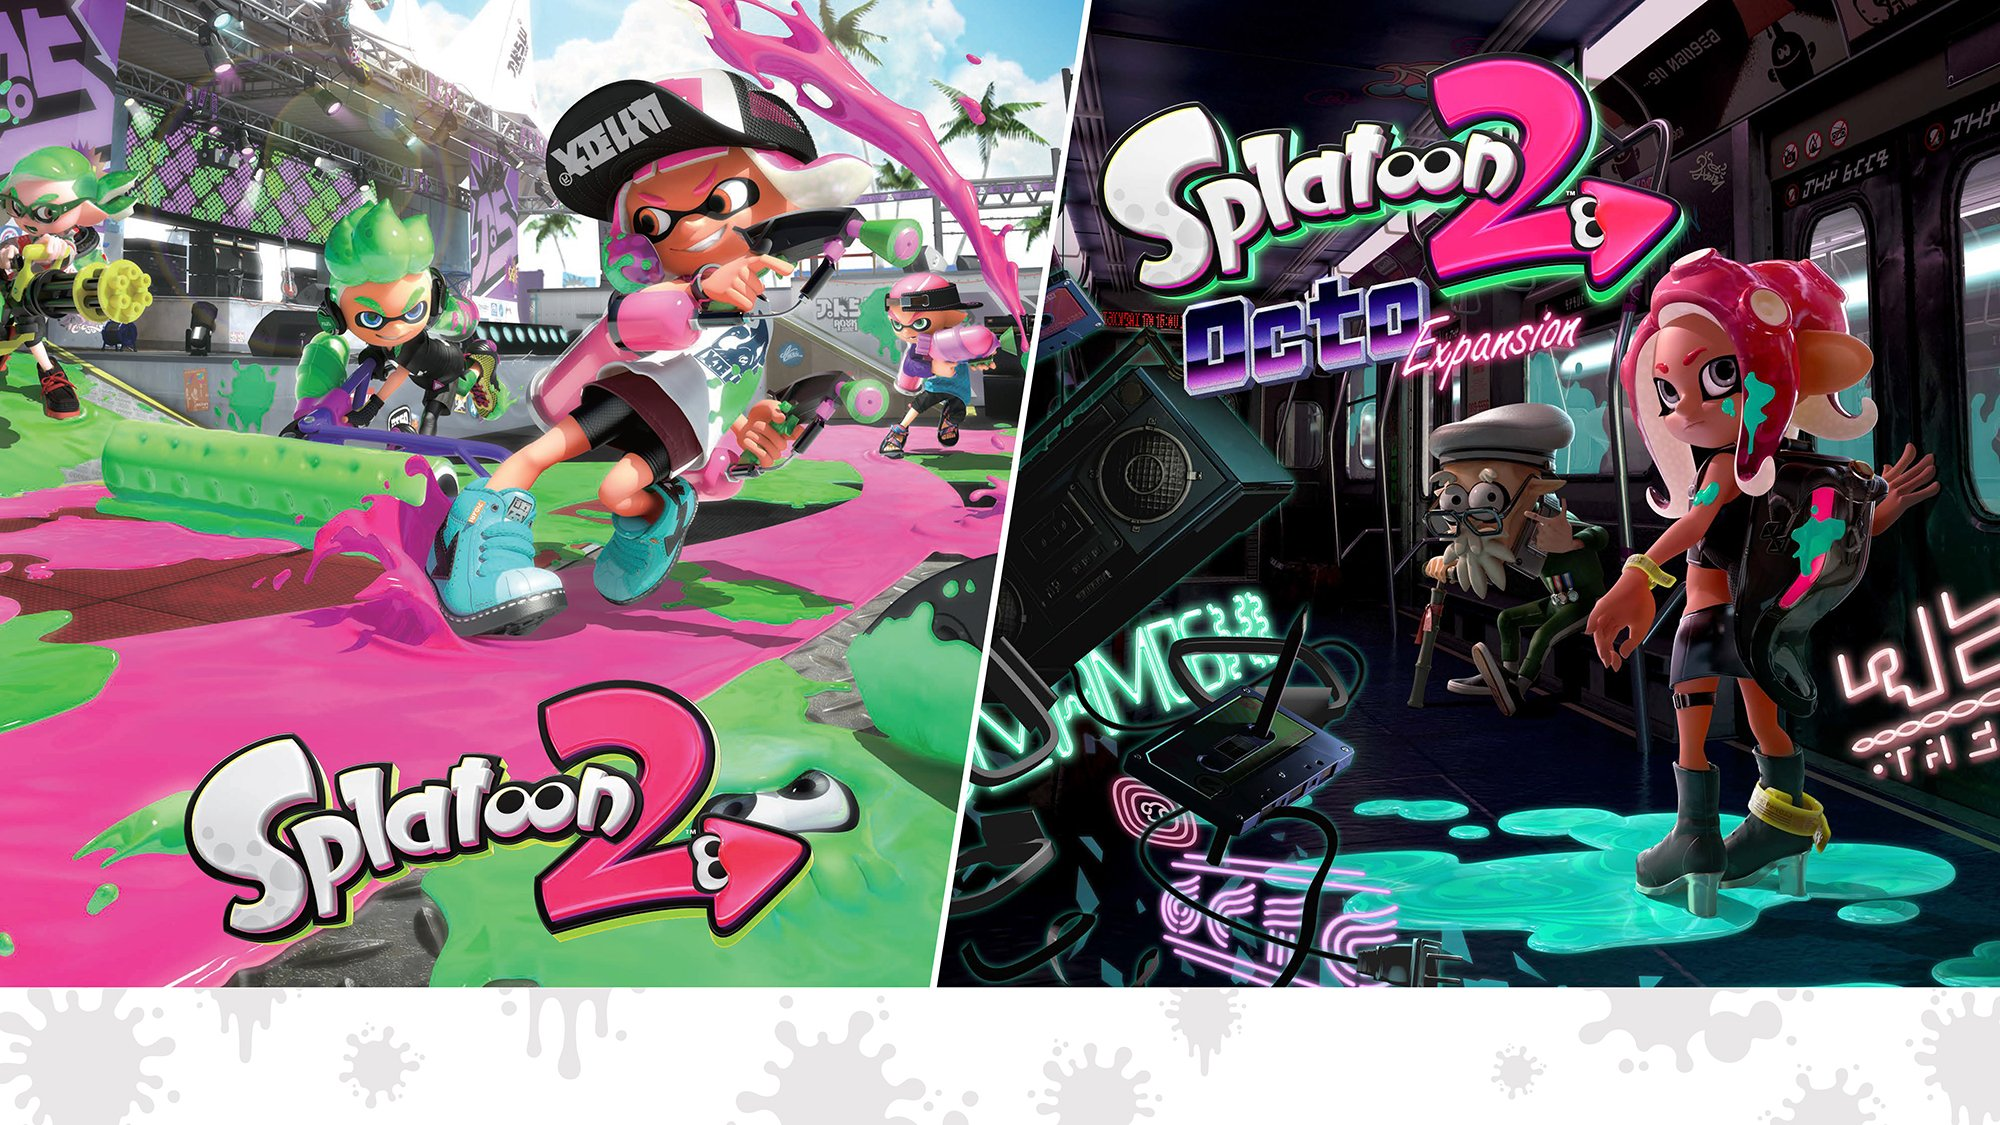 Splatoon 2 + Splatoon 2 Octo Expansion Bundle - Nintendo Switch [Digital Code]